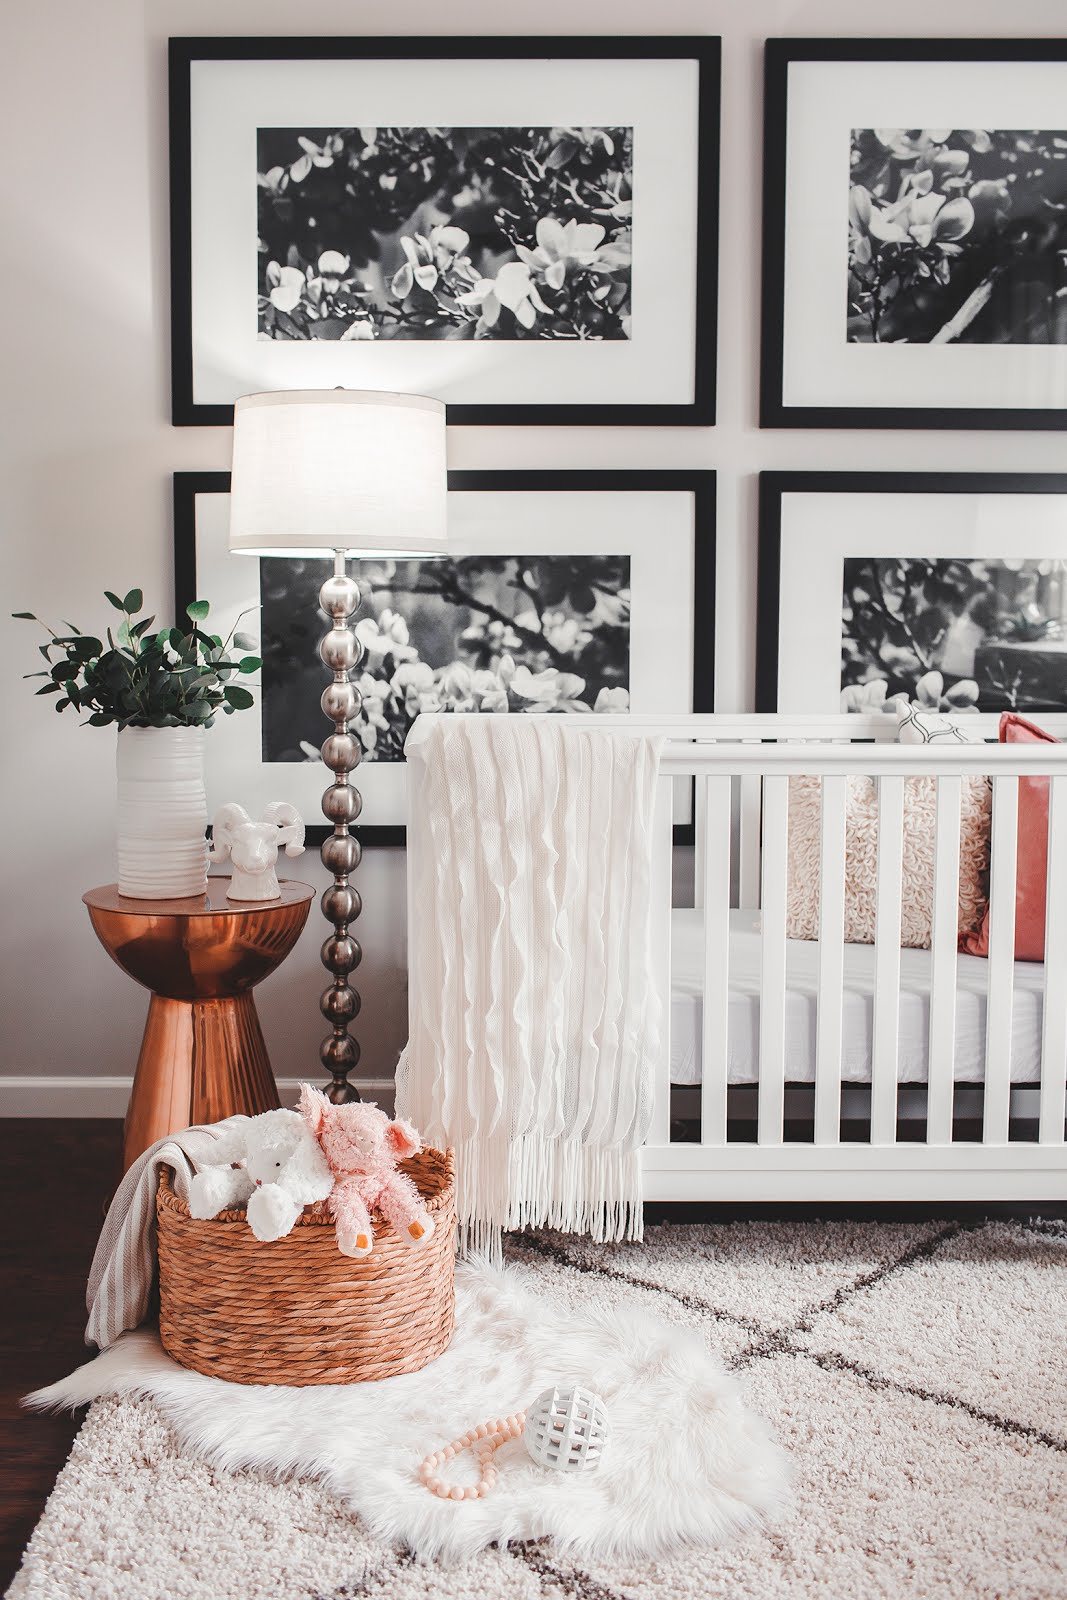 Shop the Black and White Prints from Emma's Nursery